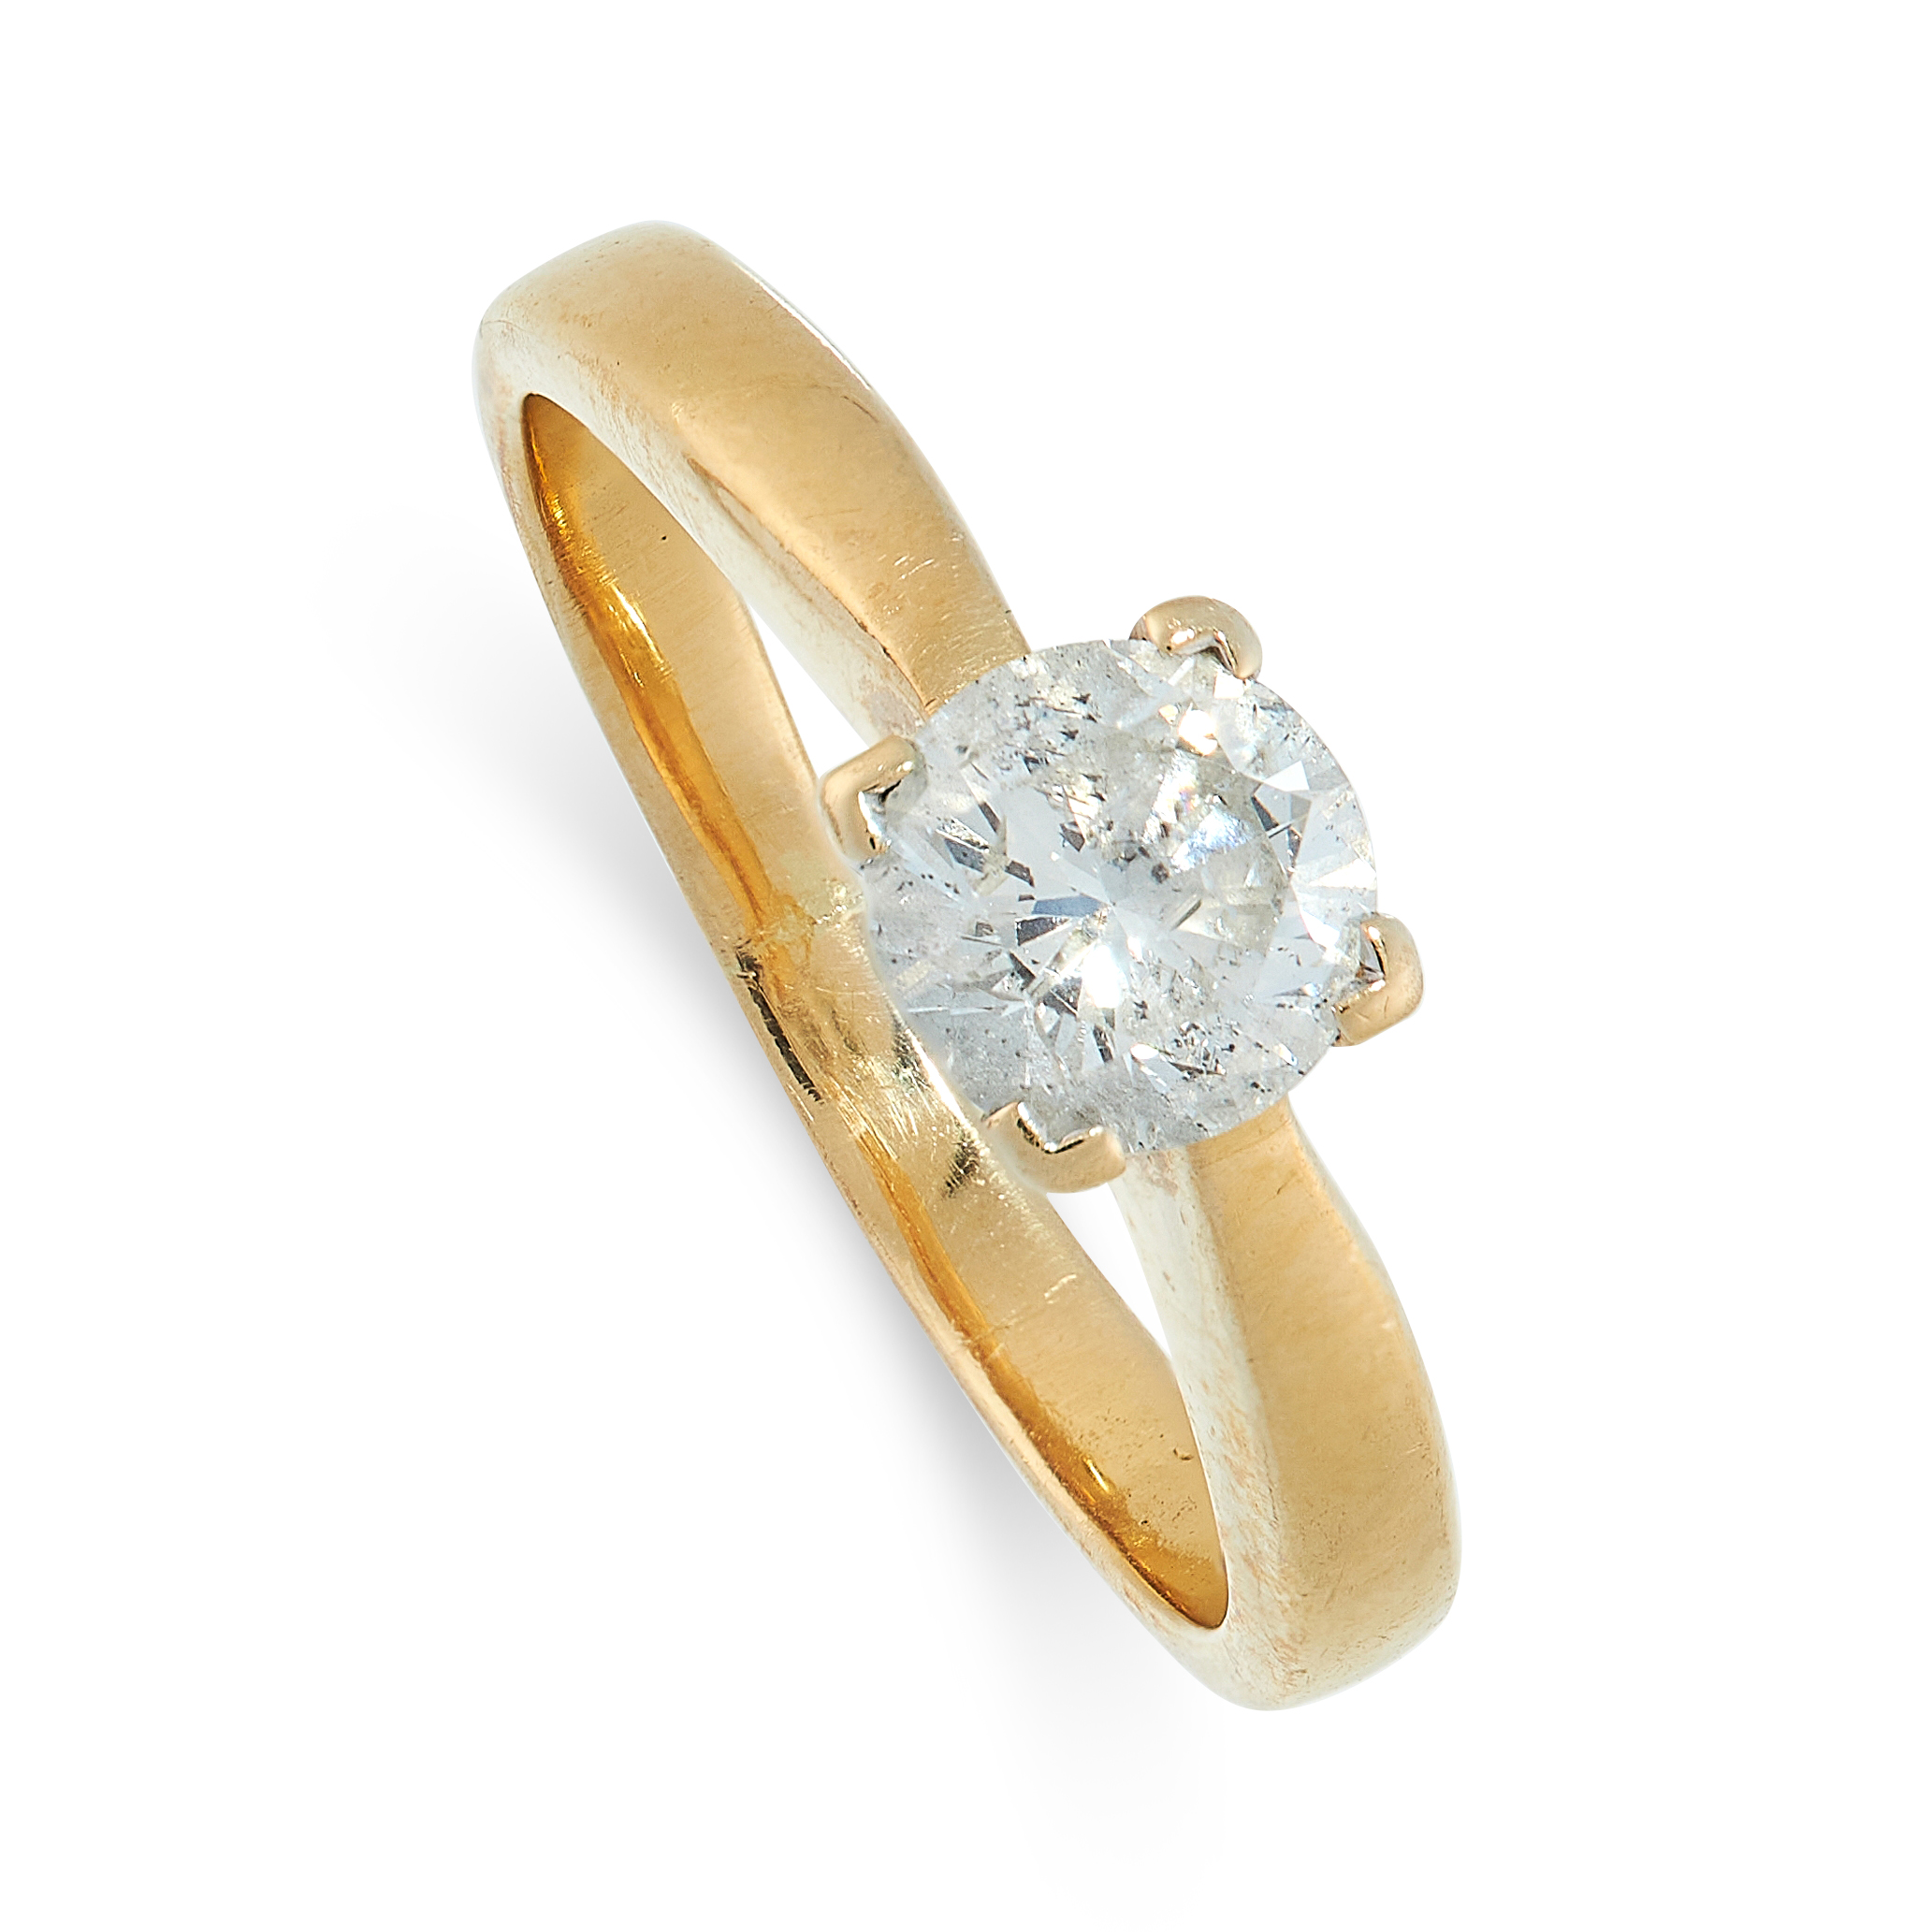 DIAMOND SOLITAIRE RING in 18ct yellow gold, set with a round cut diamond of 0.85 carats, British